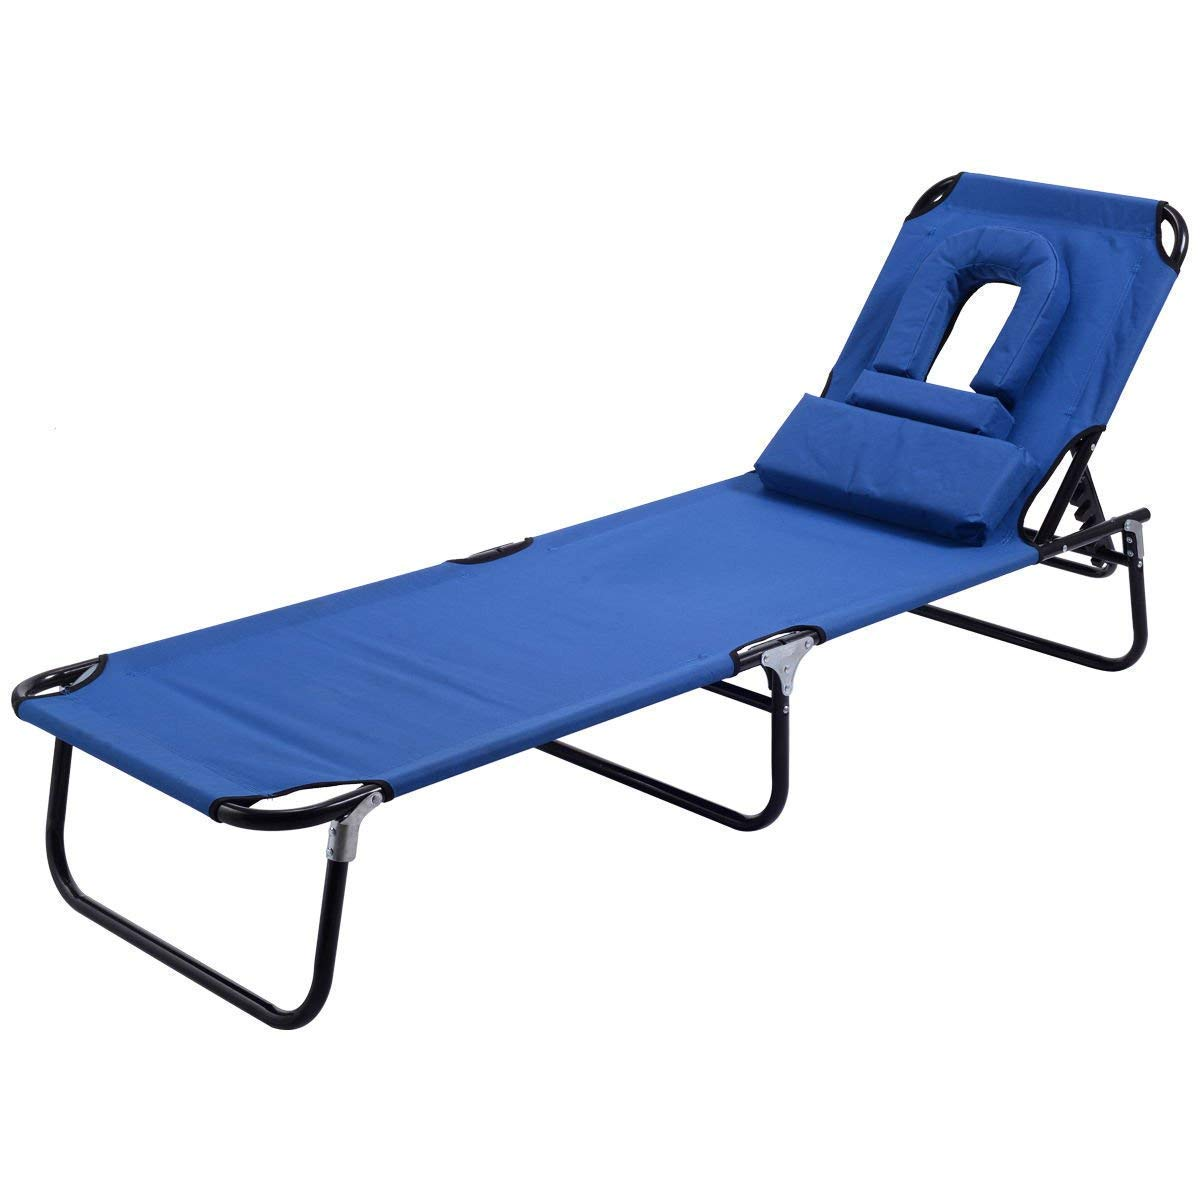 Goplus Folding Chaise Lounge Chair Reclining Adjustable Outdoor Patio Beach Camping Recliner w/Hole for Face Pool Yard, Support 300 Lbs